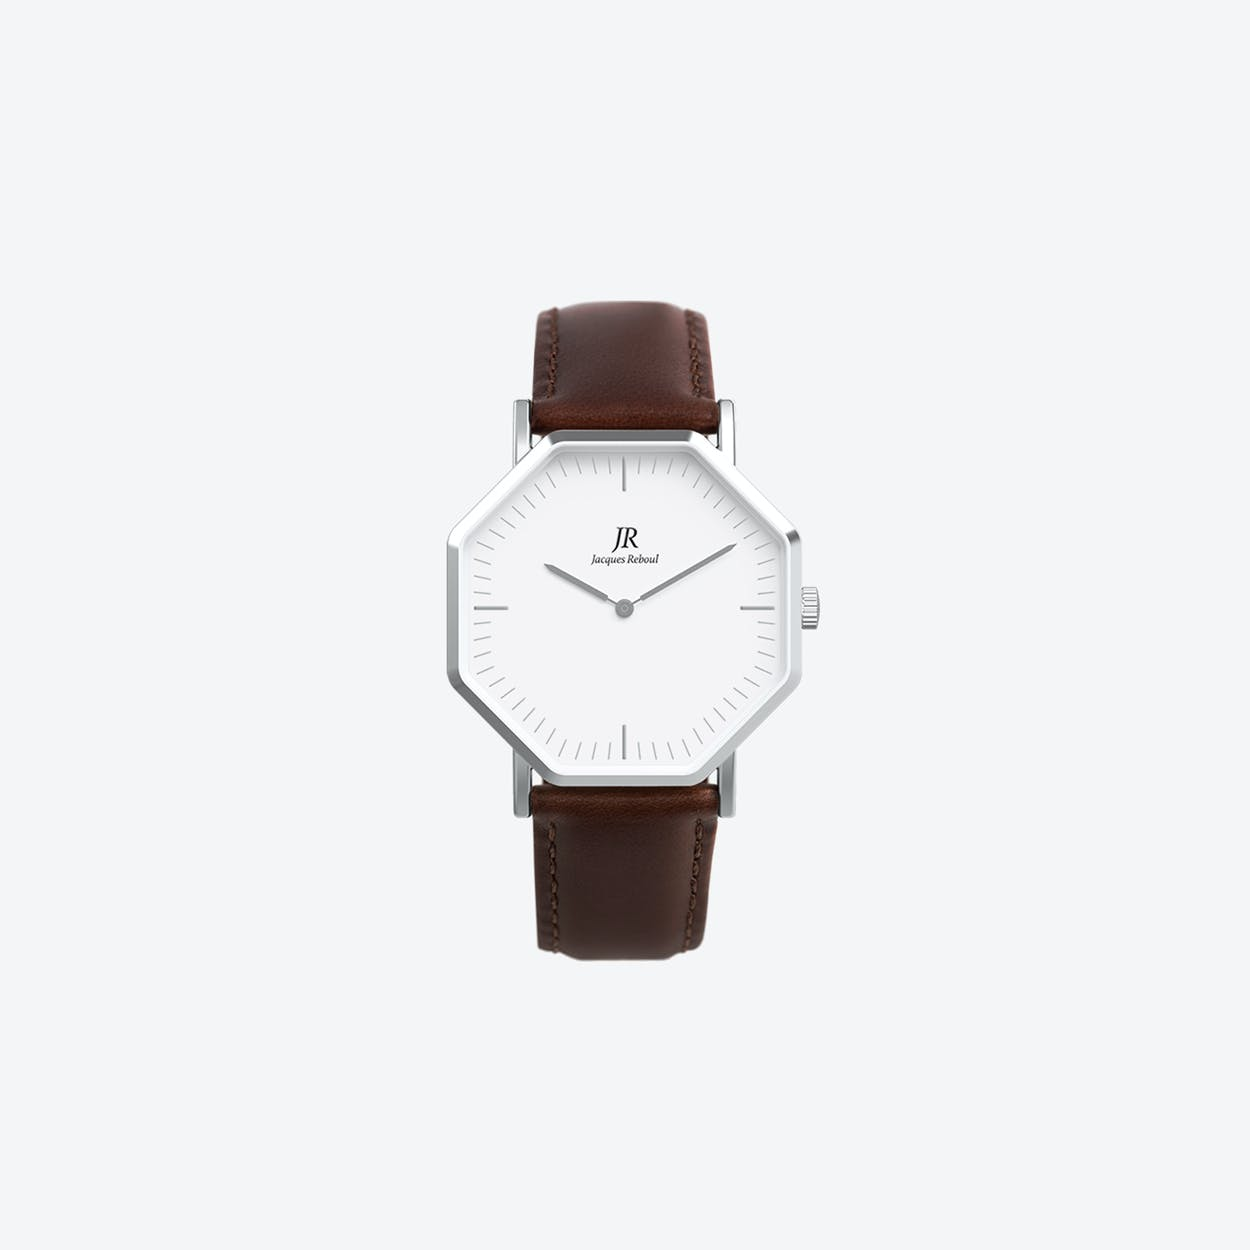 Premier Classic Silver Hexagonal Watch with Dk Brown Leather Strap 36mm